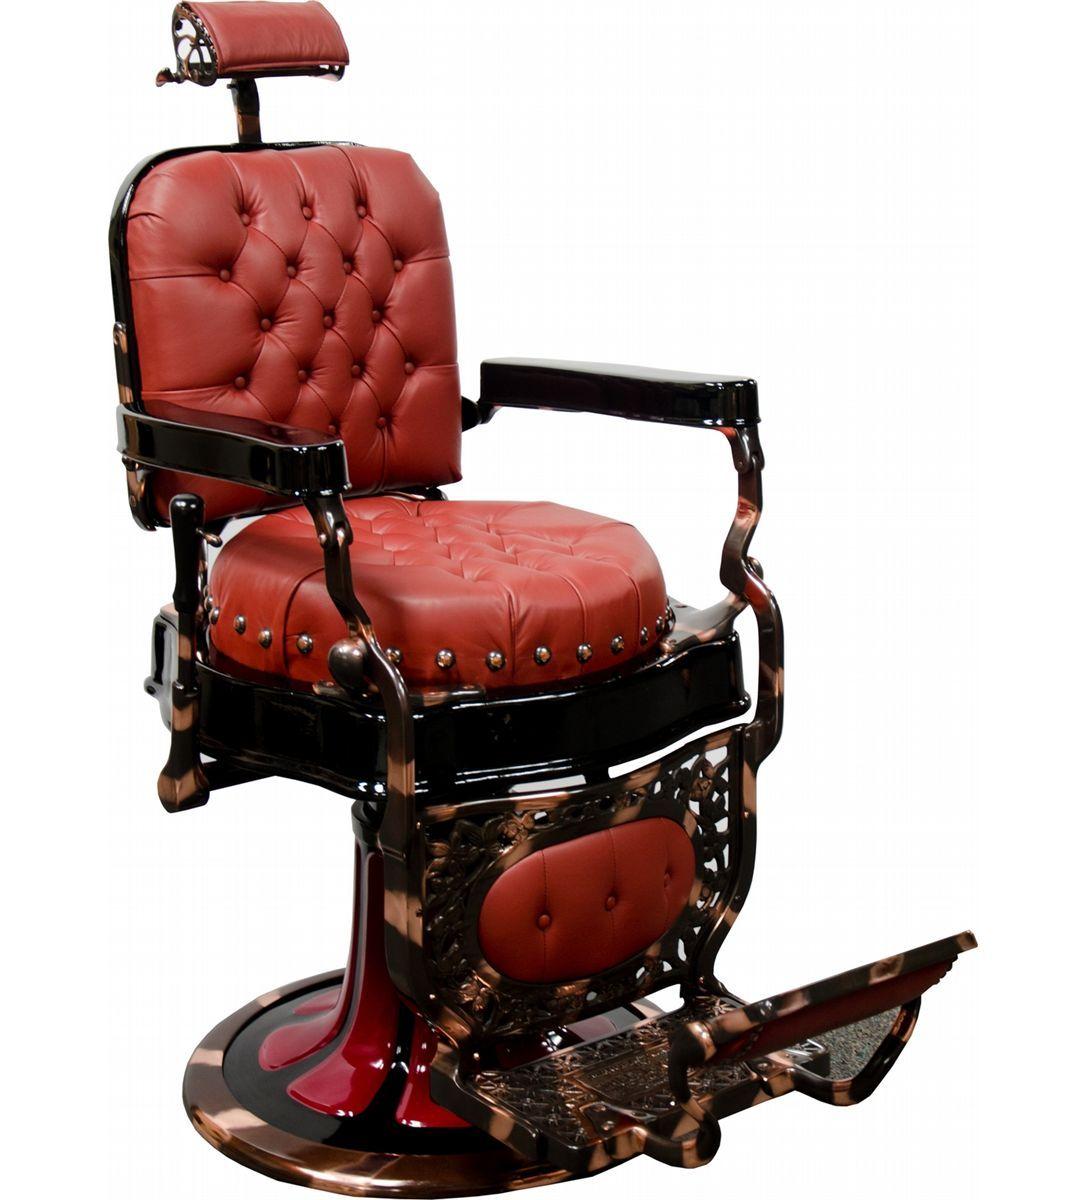 Barber Shop Chairs For Sale Stuhlede Com Barber Shop Chairs Barber Chair Barber Chair For Sale